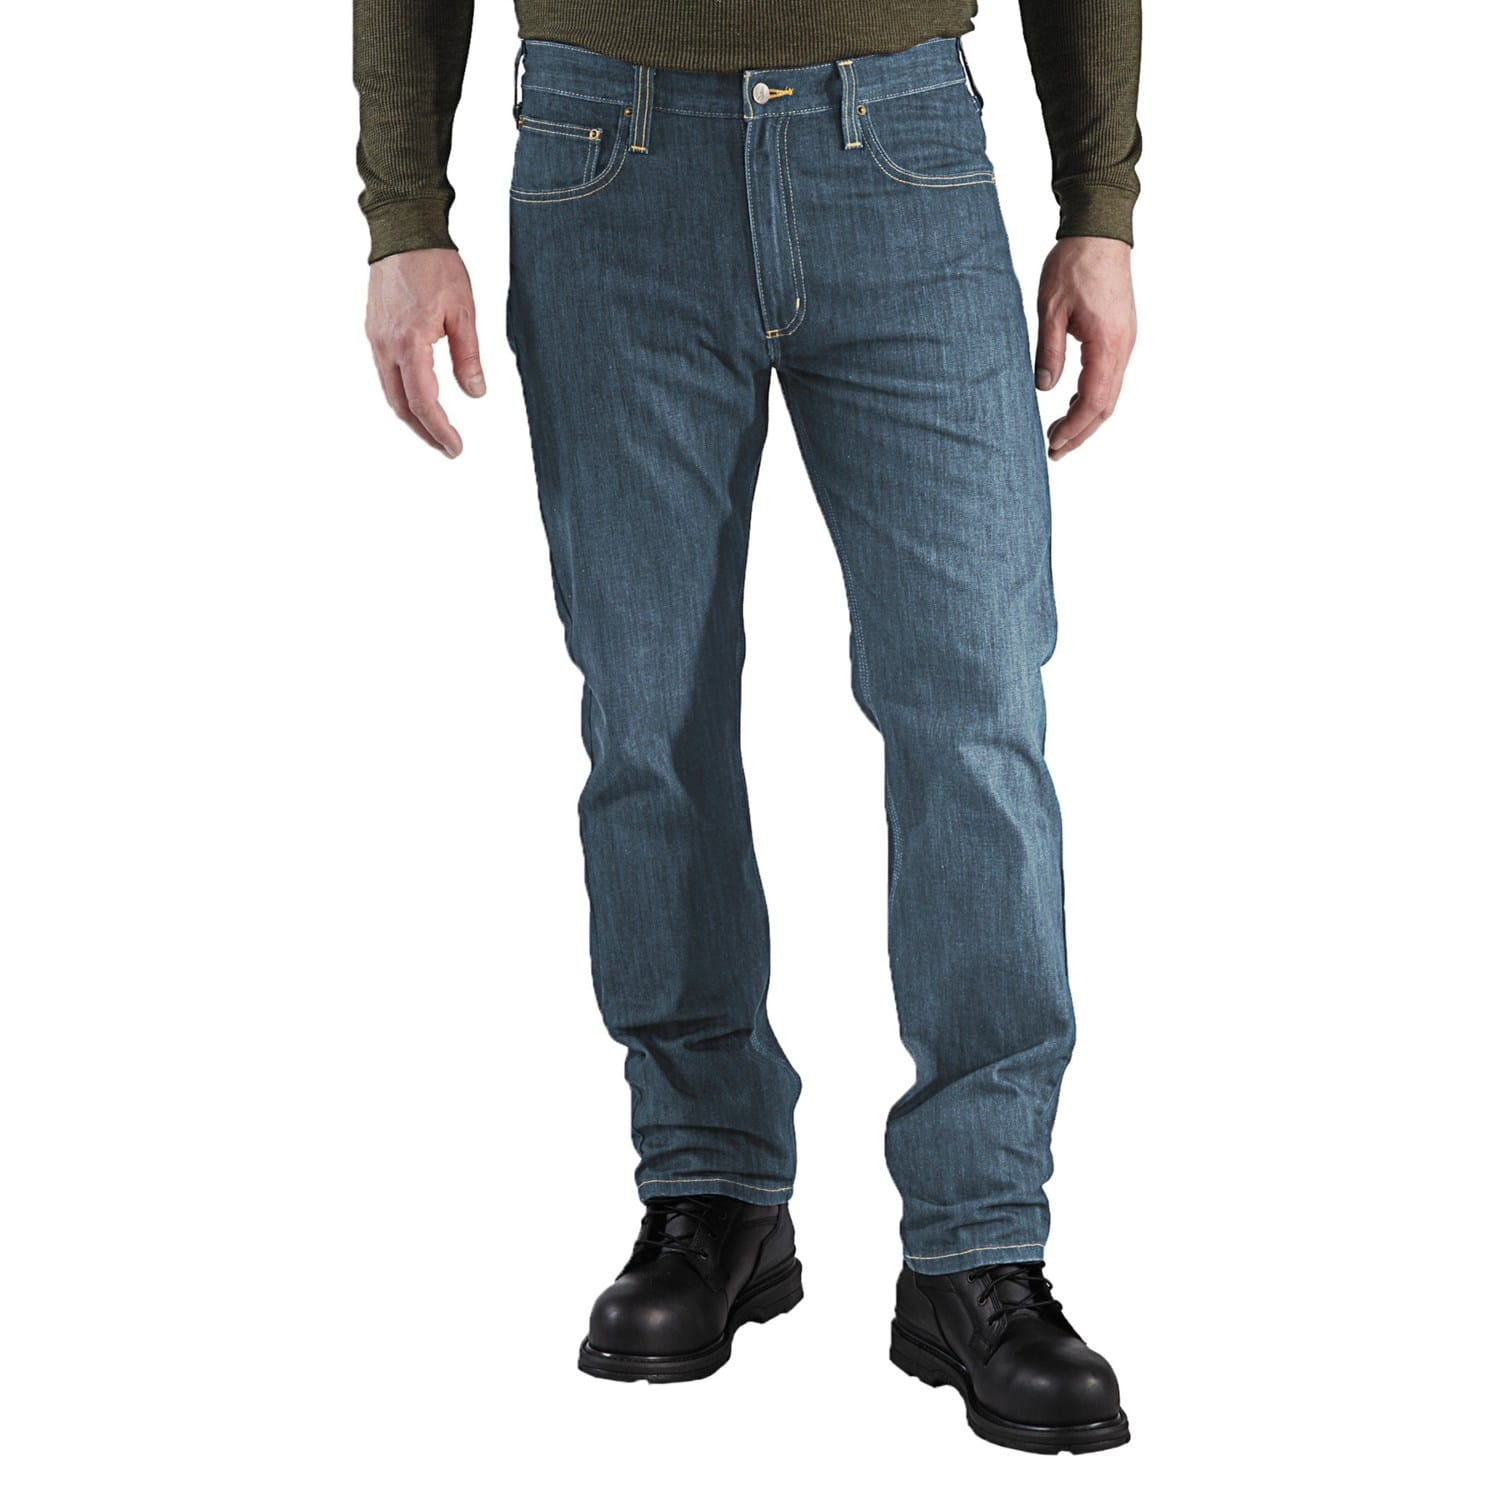 Carhartt Men's Apparel: Coveralls (2nds) $90, Jeans (2nds)  $9 & More